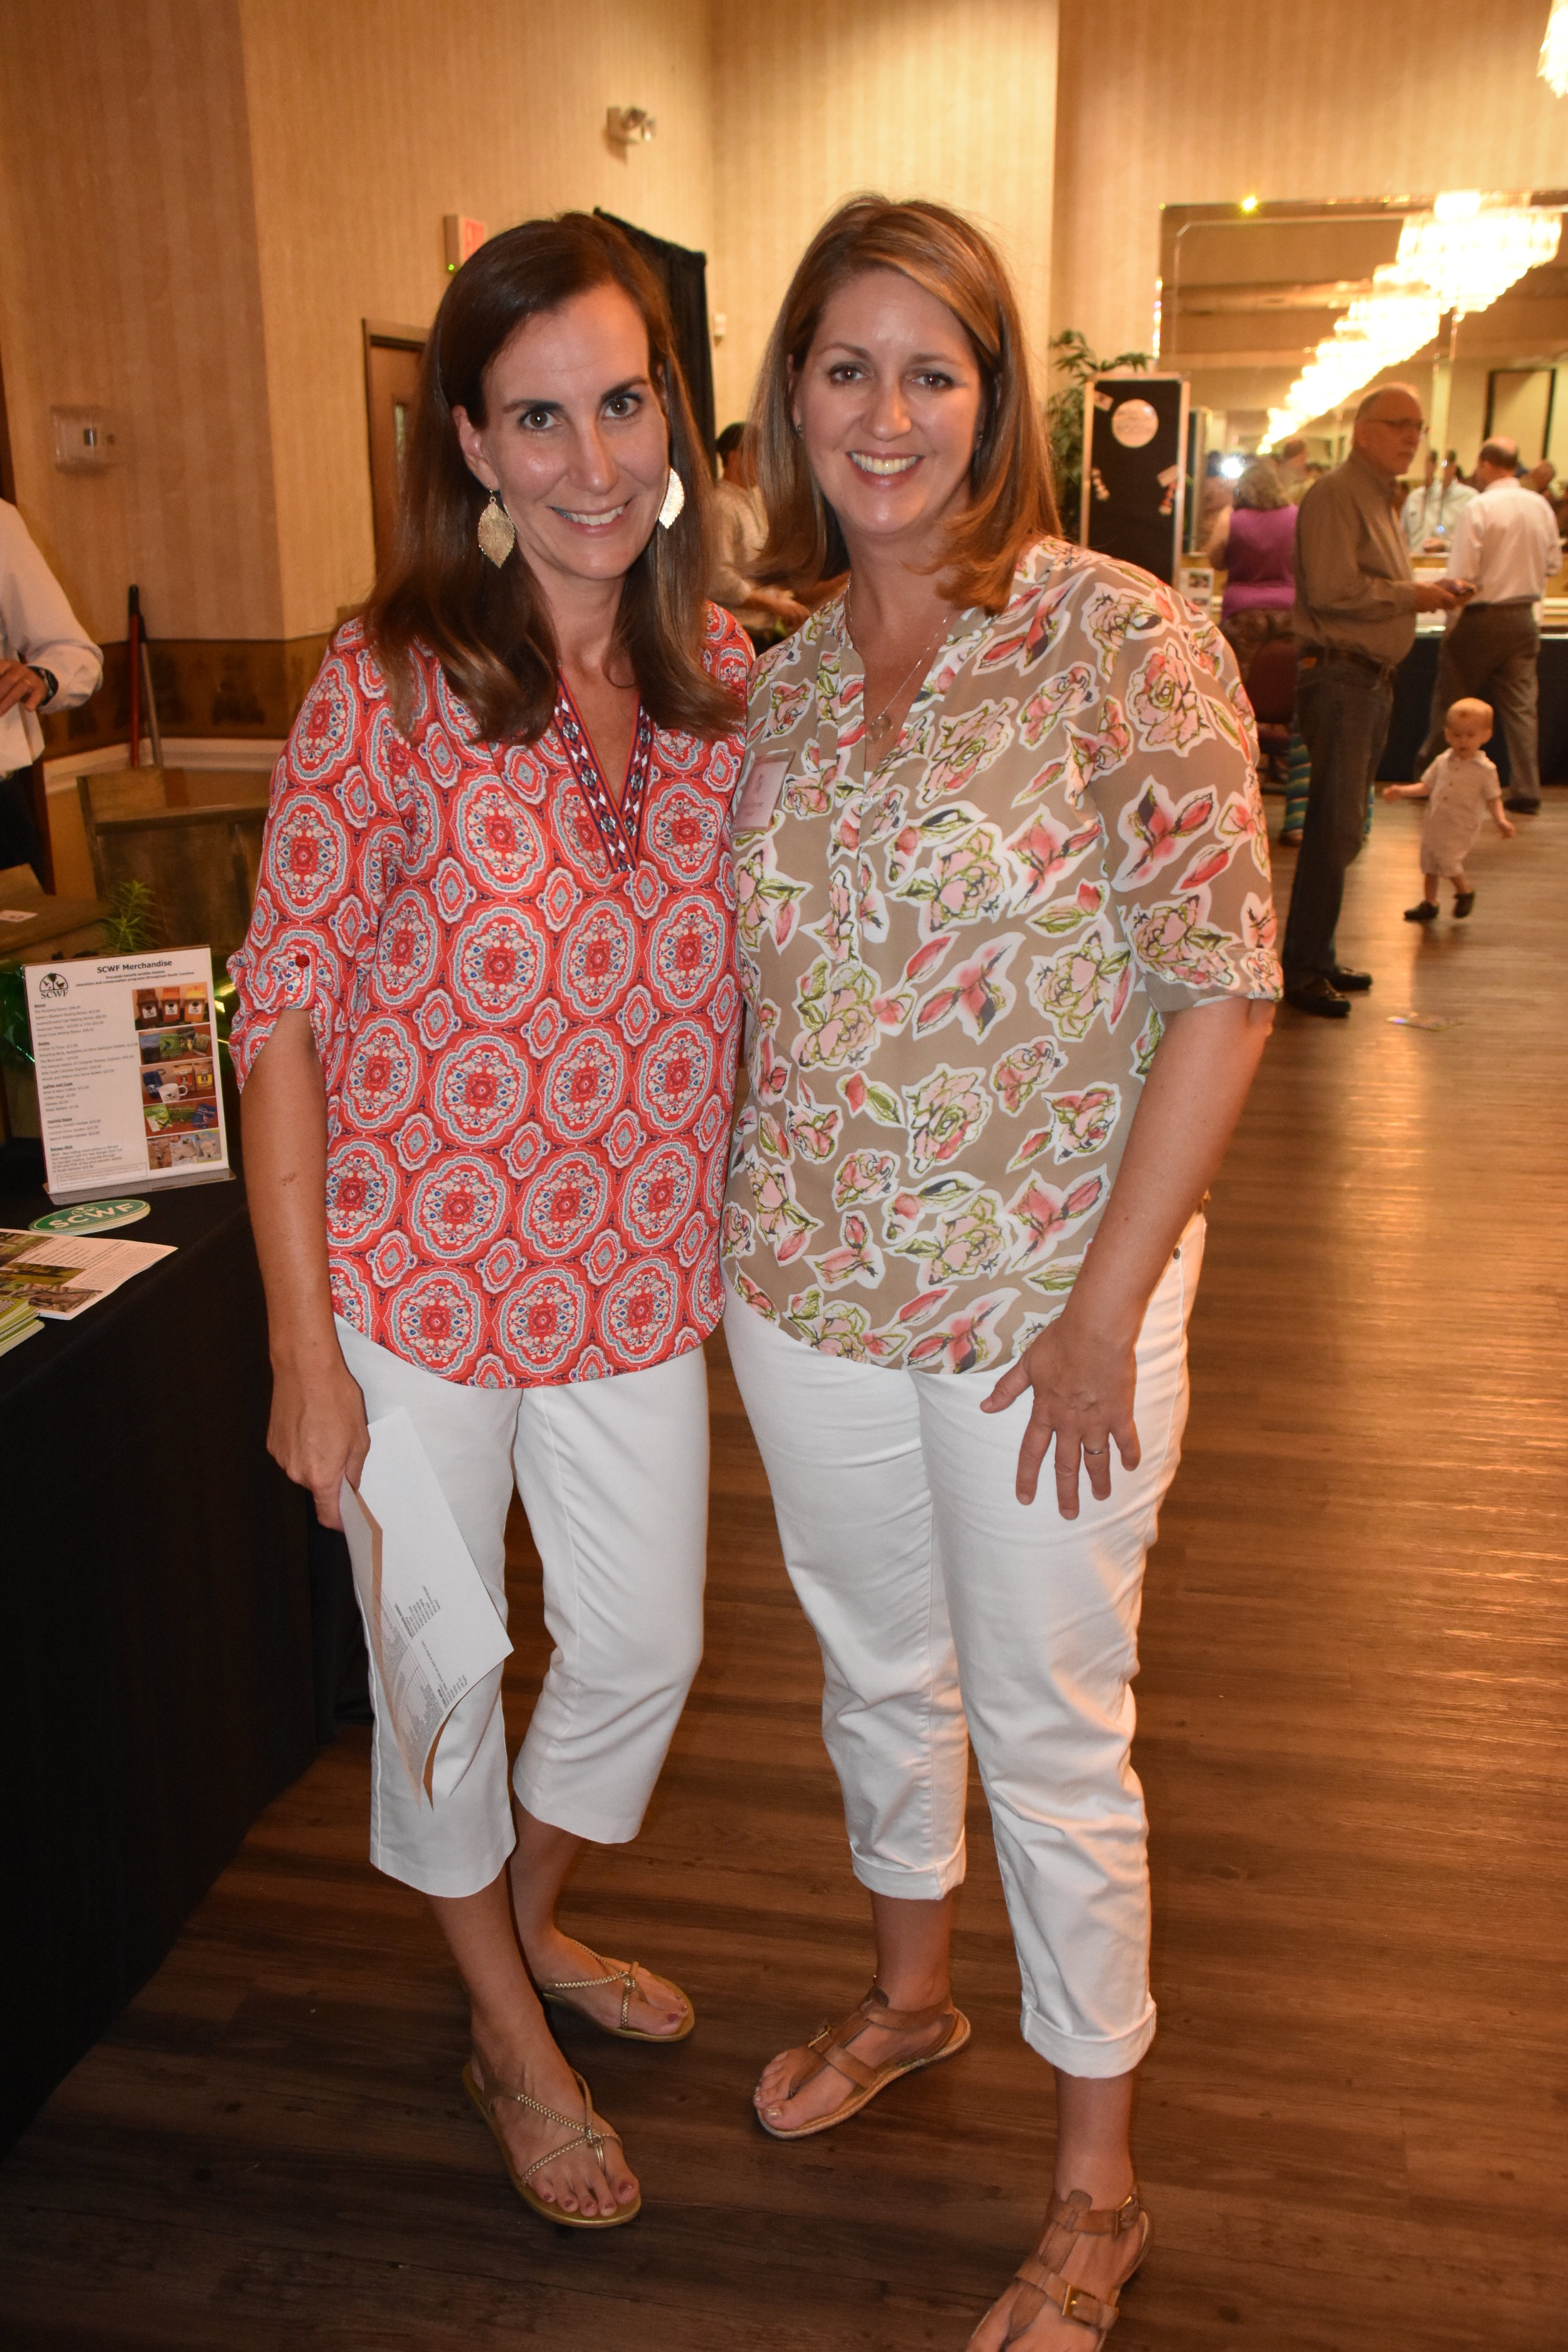 Director of Education Sara Green and former Director of Development Harley Carpenter. Photo credit: Ray Nelson.